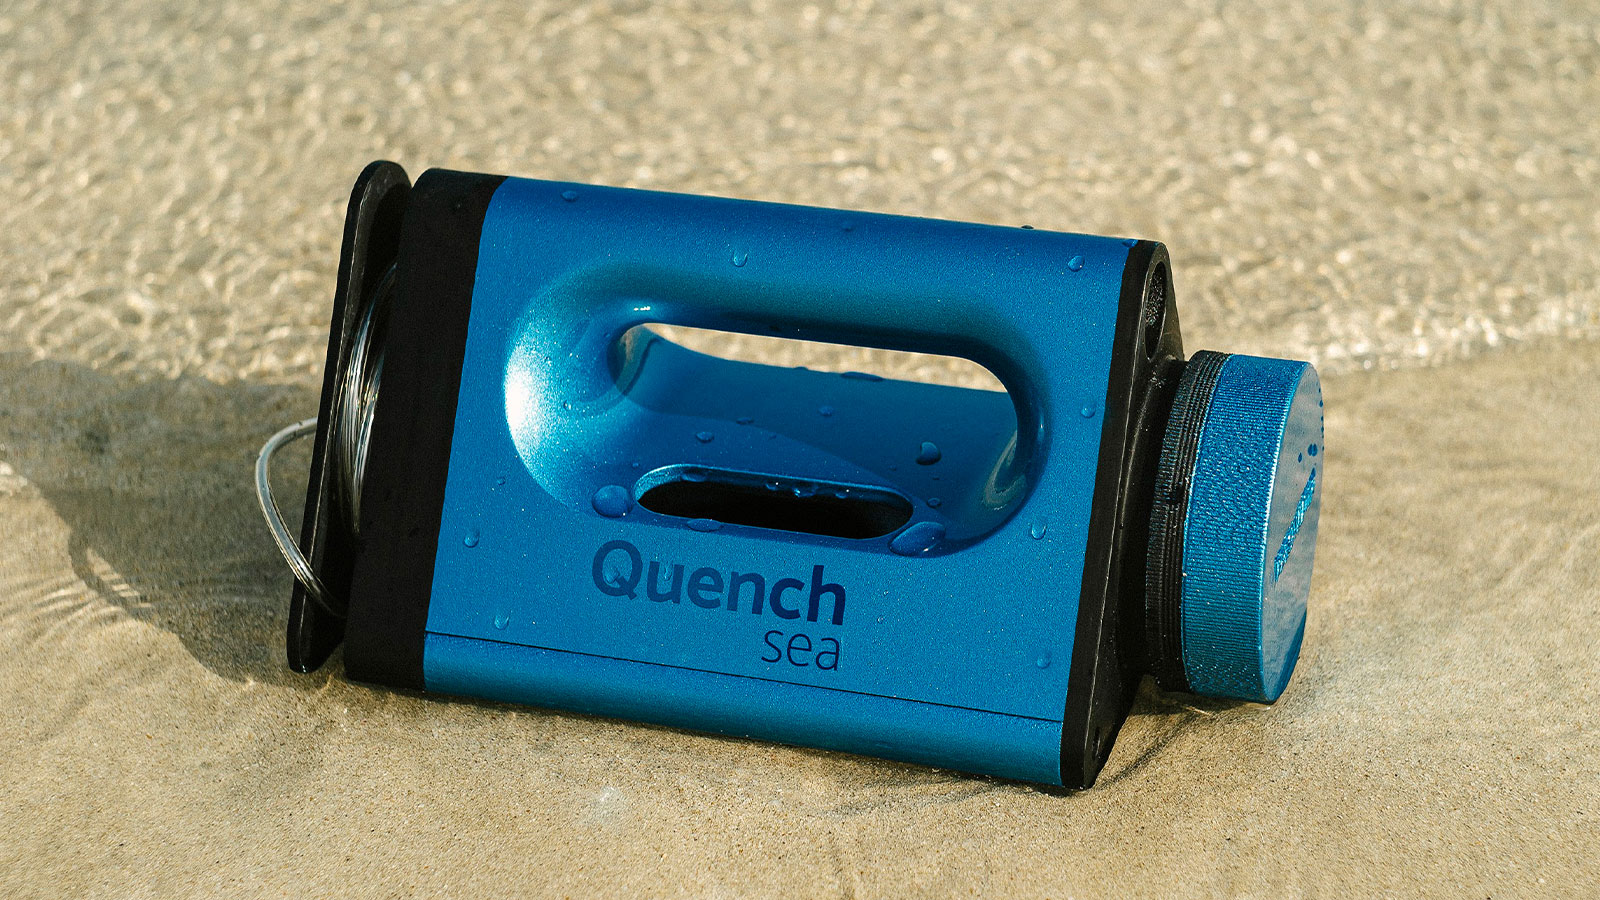 QuenchSea